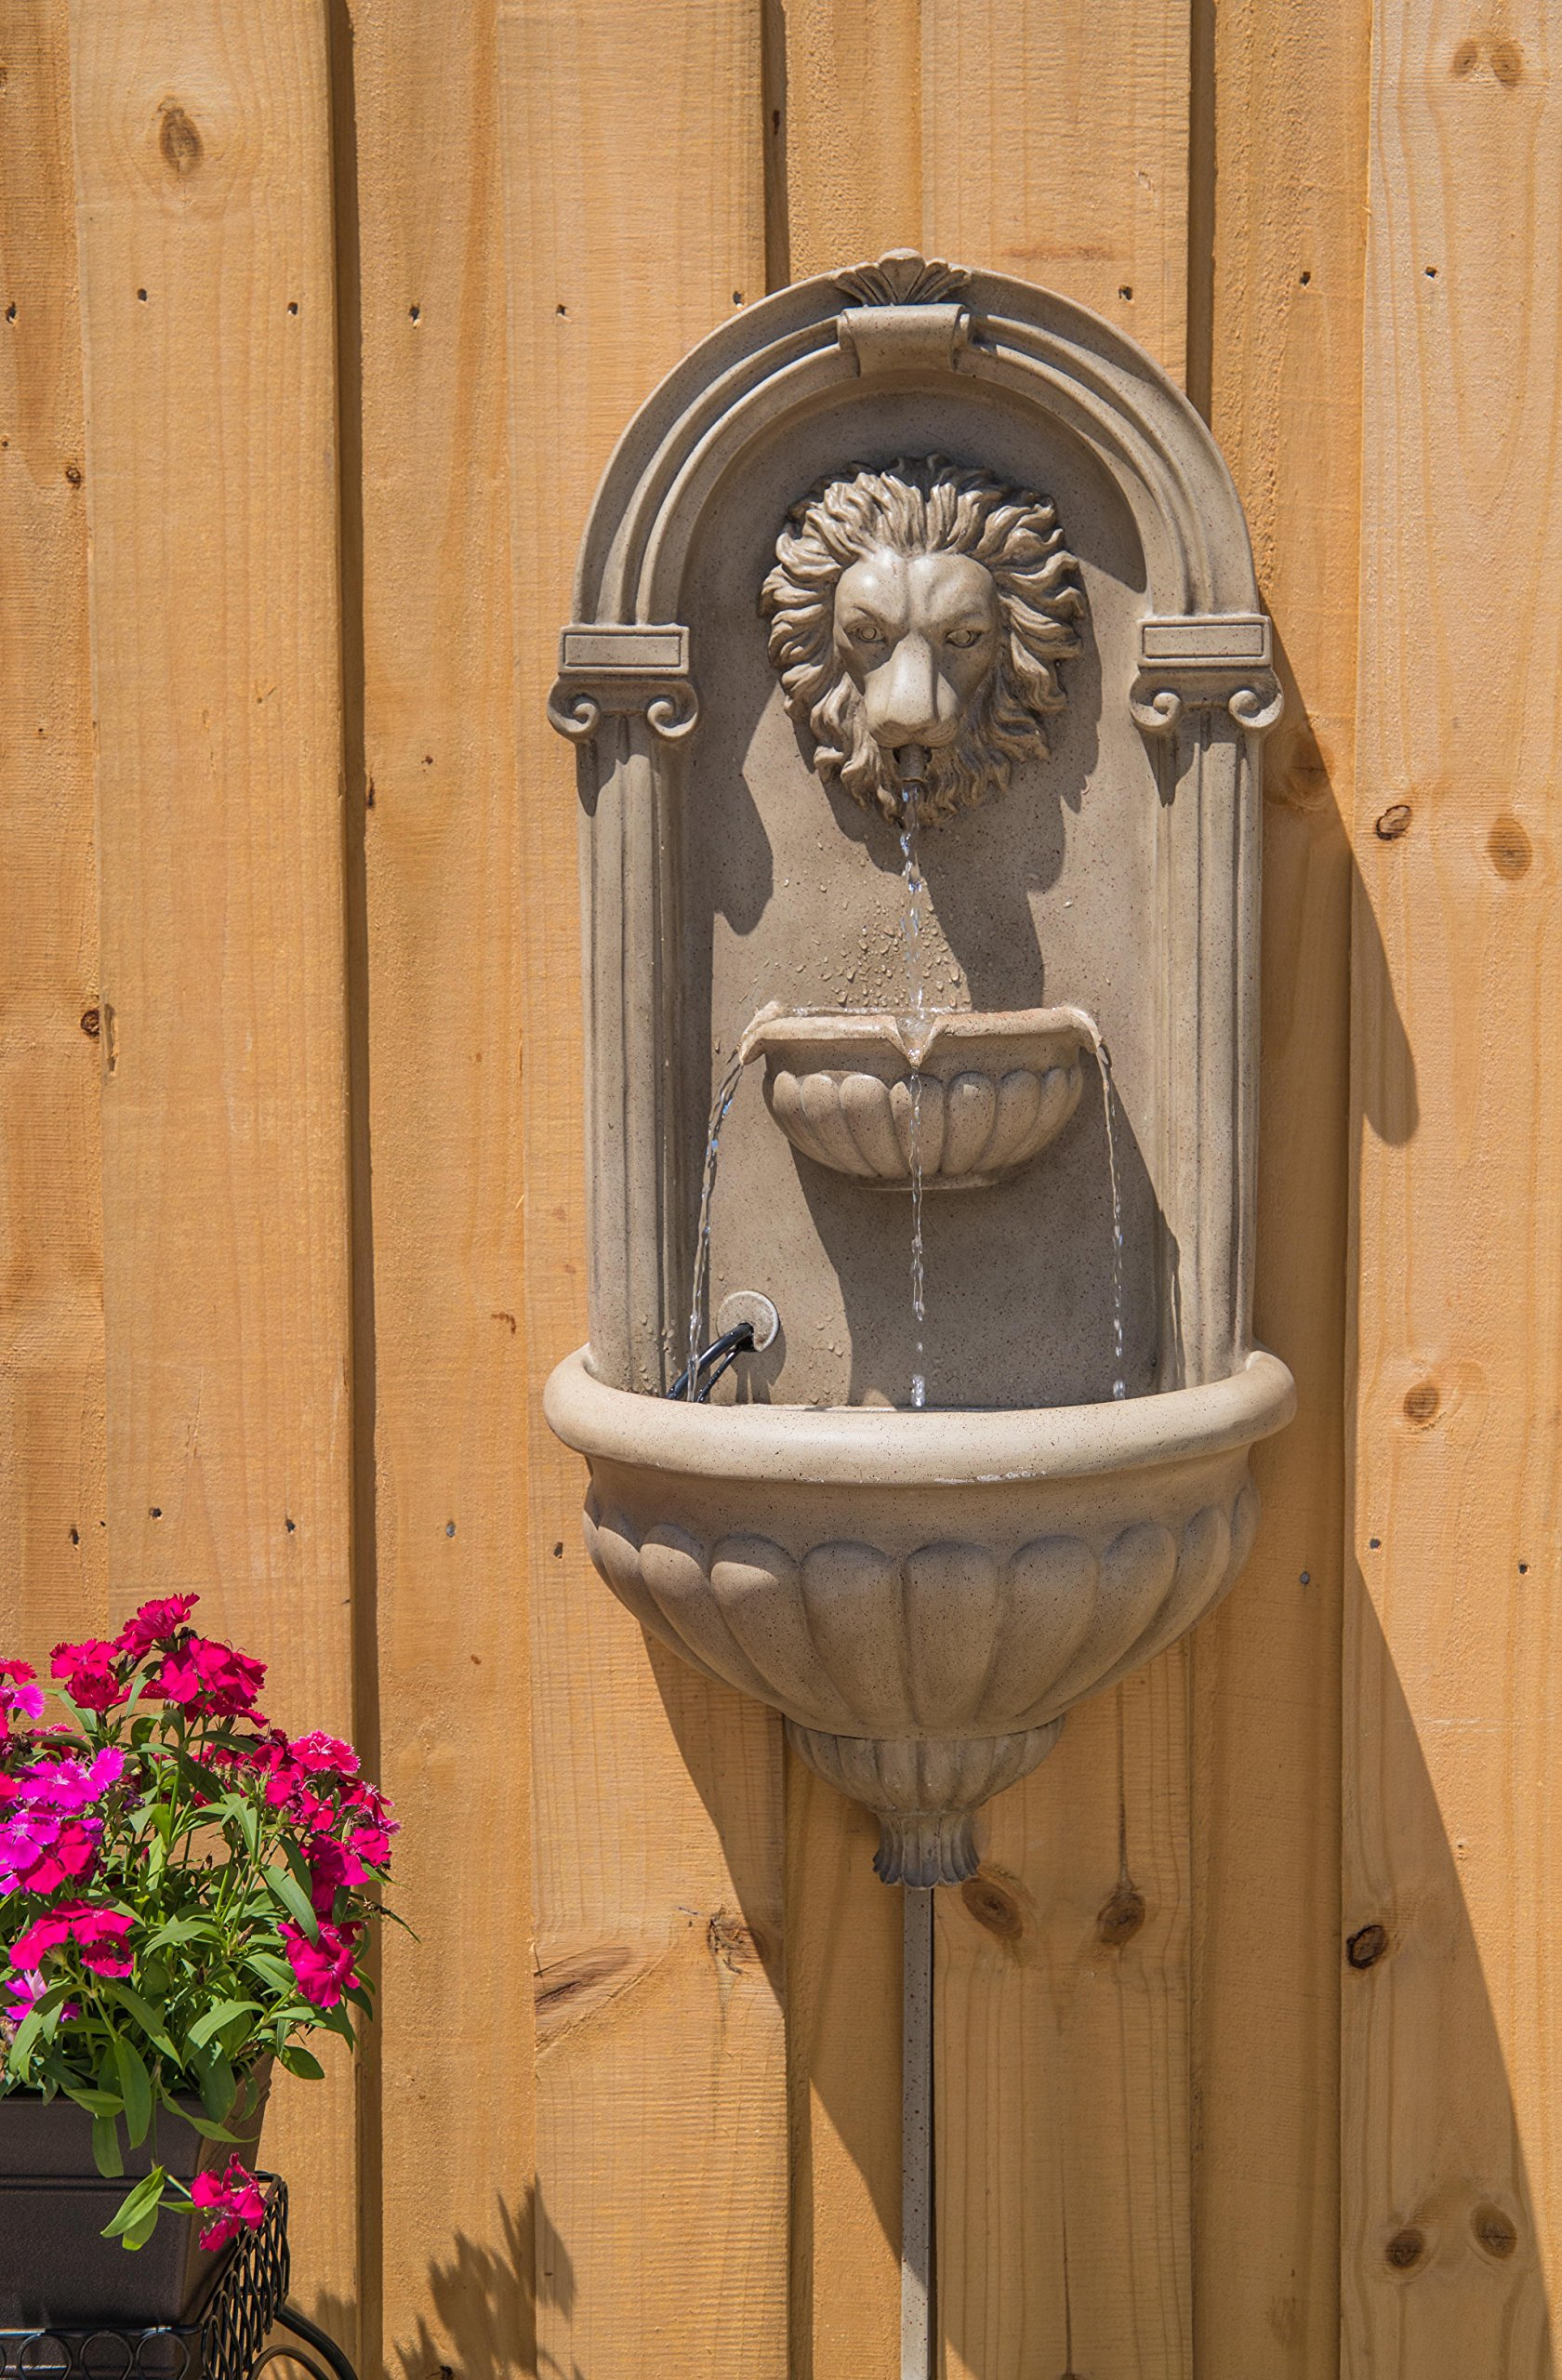 Kenroy Home 51043SNDST Royal Wall Fountain with Light, Sandstone Finish by Kenroy Home (Image #2)